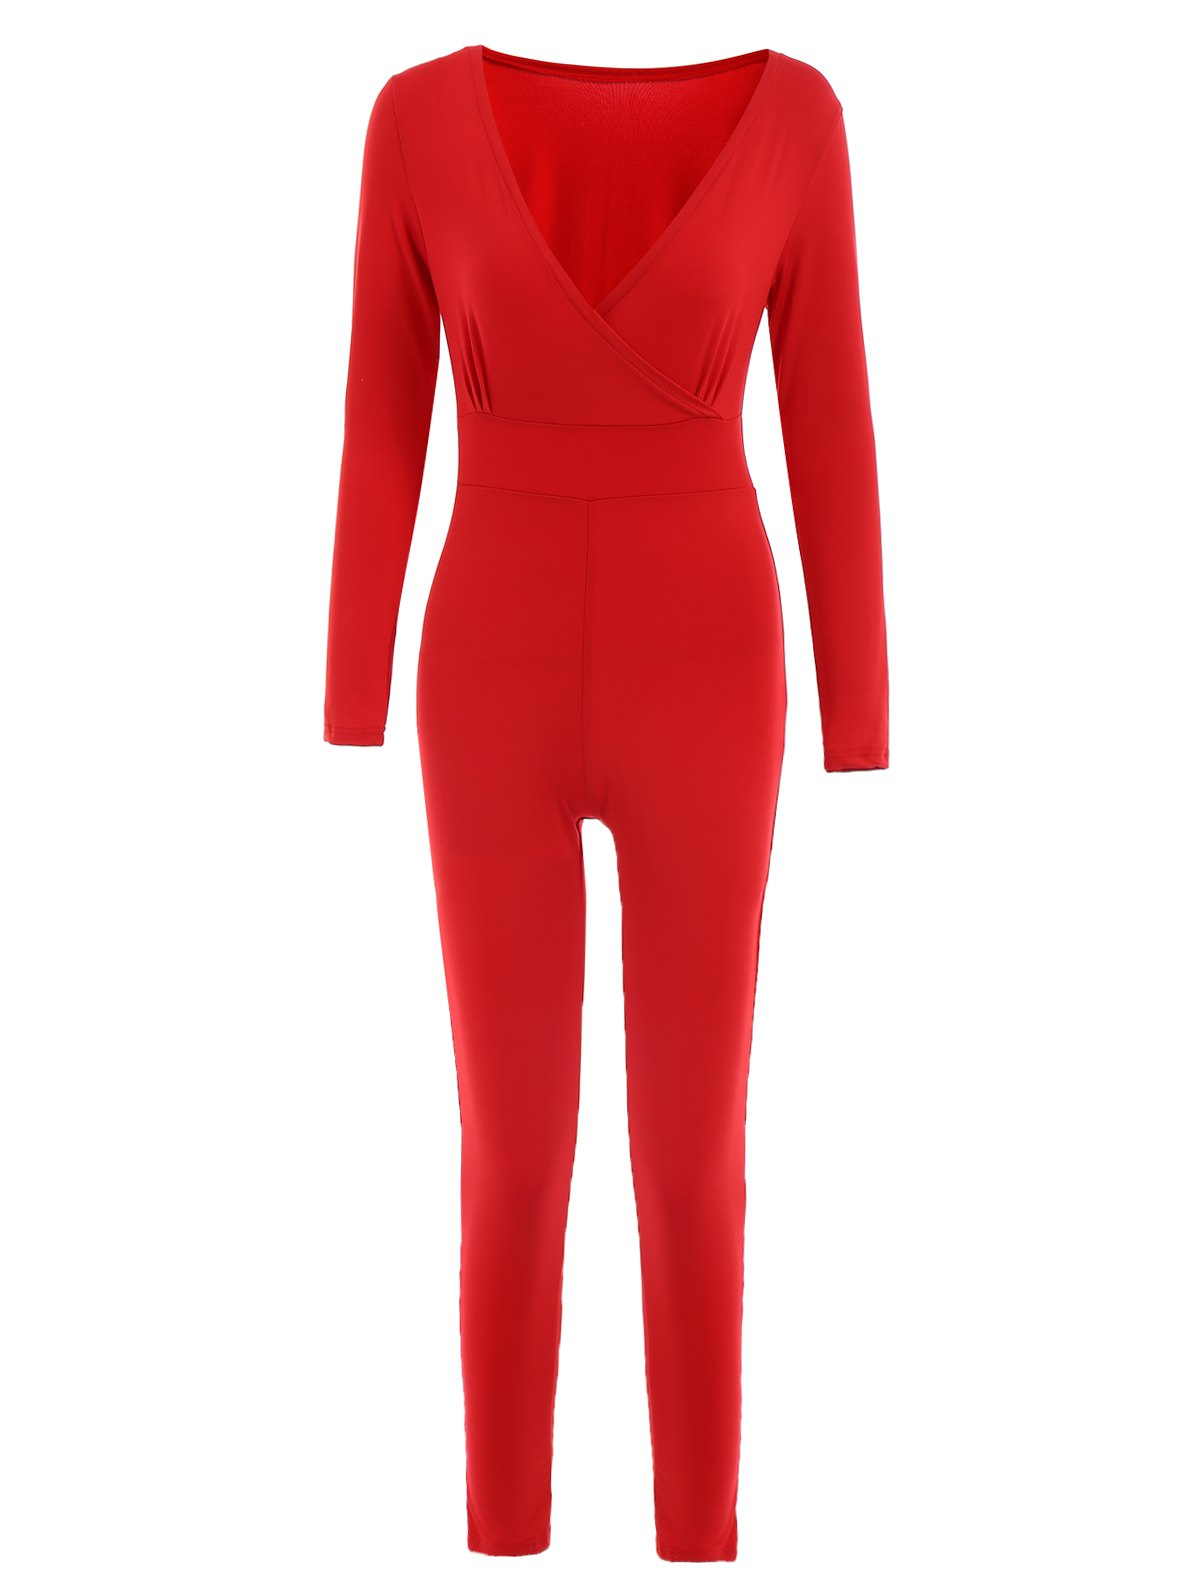 Sexy Red Plunging Neck Long Sleeve Jumpsuit For Women, RED, L in ...